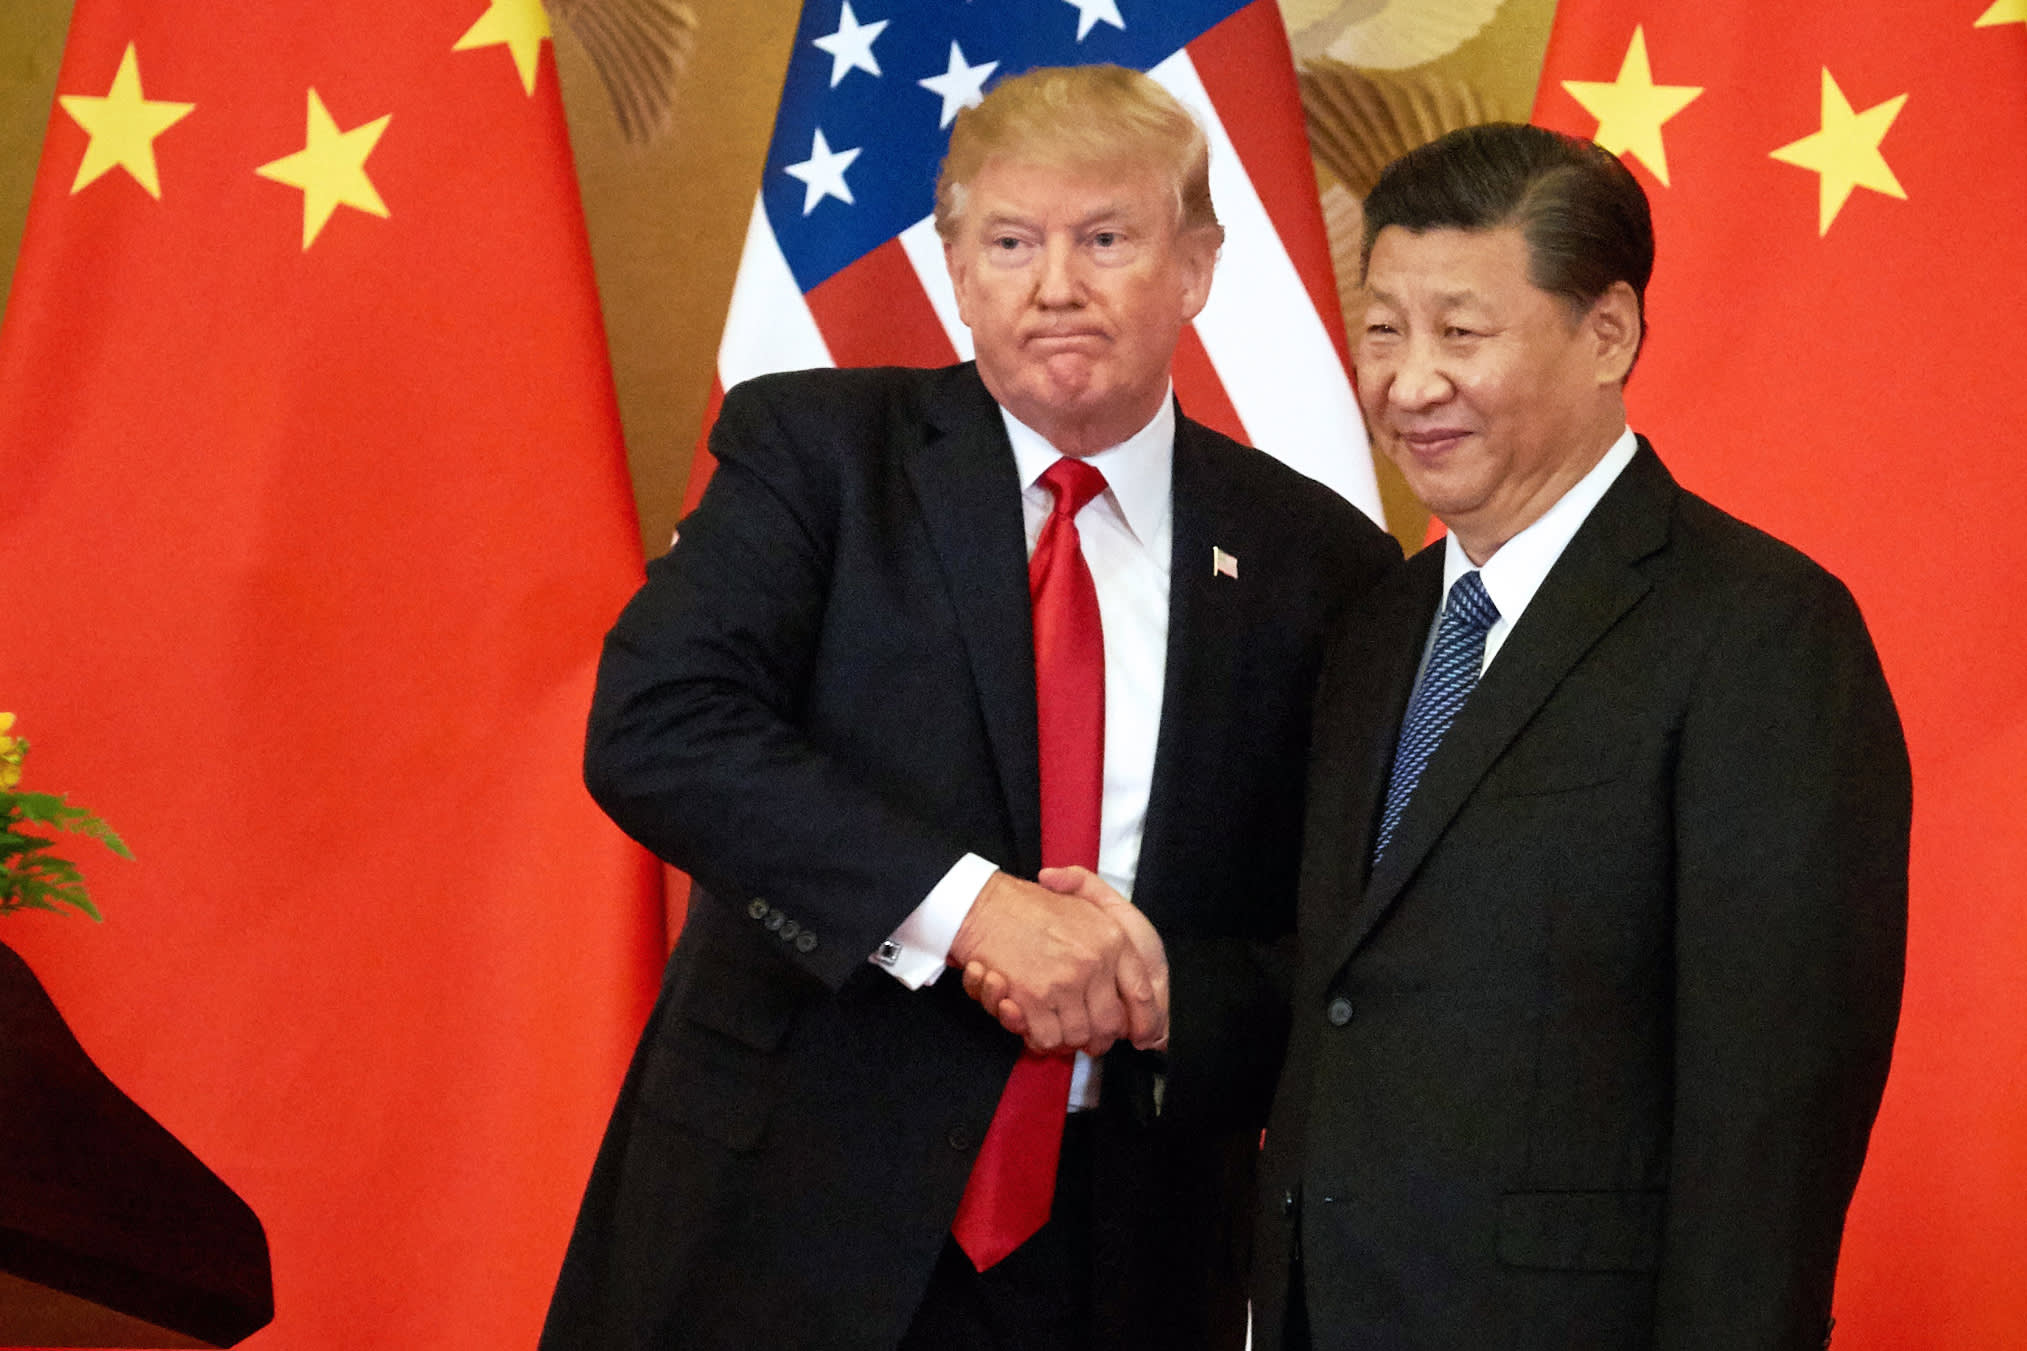 Trump may be able to order US firms out of China — but it will cost him politically, says business leader